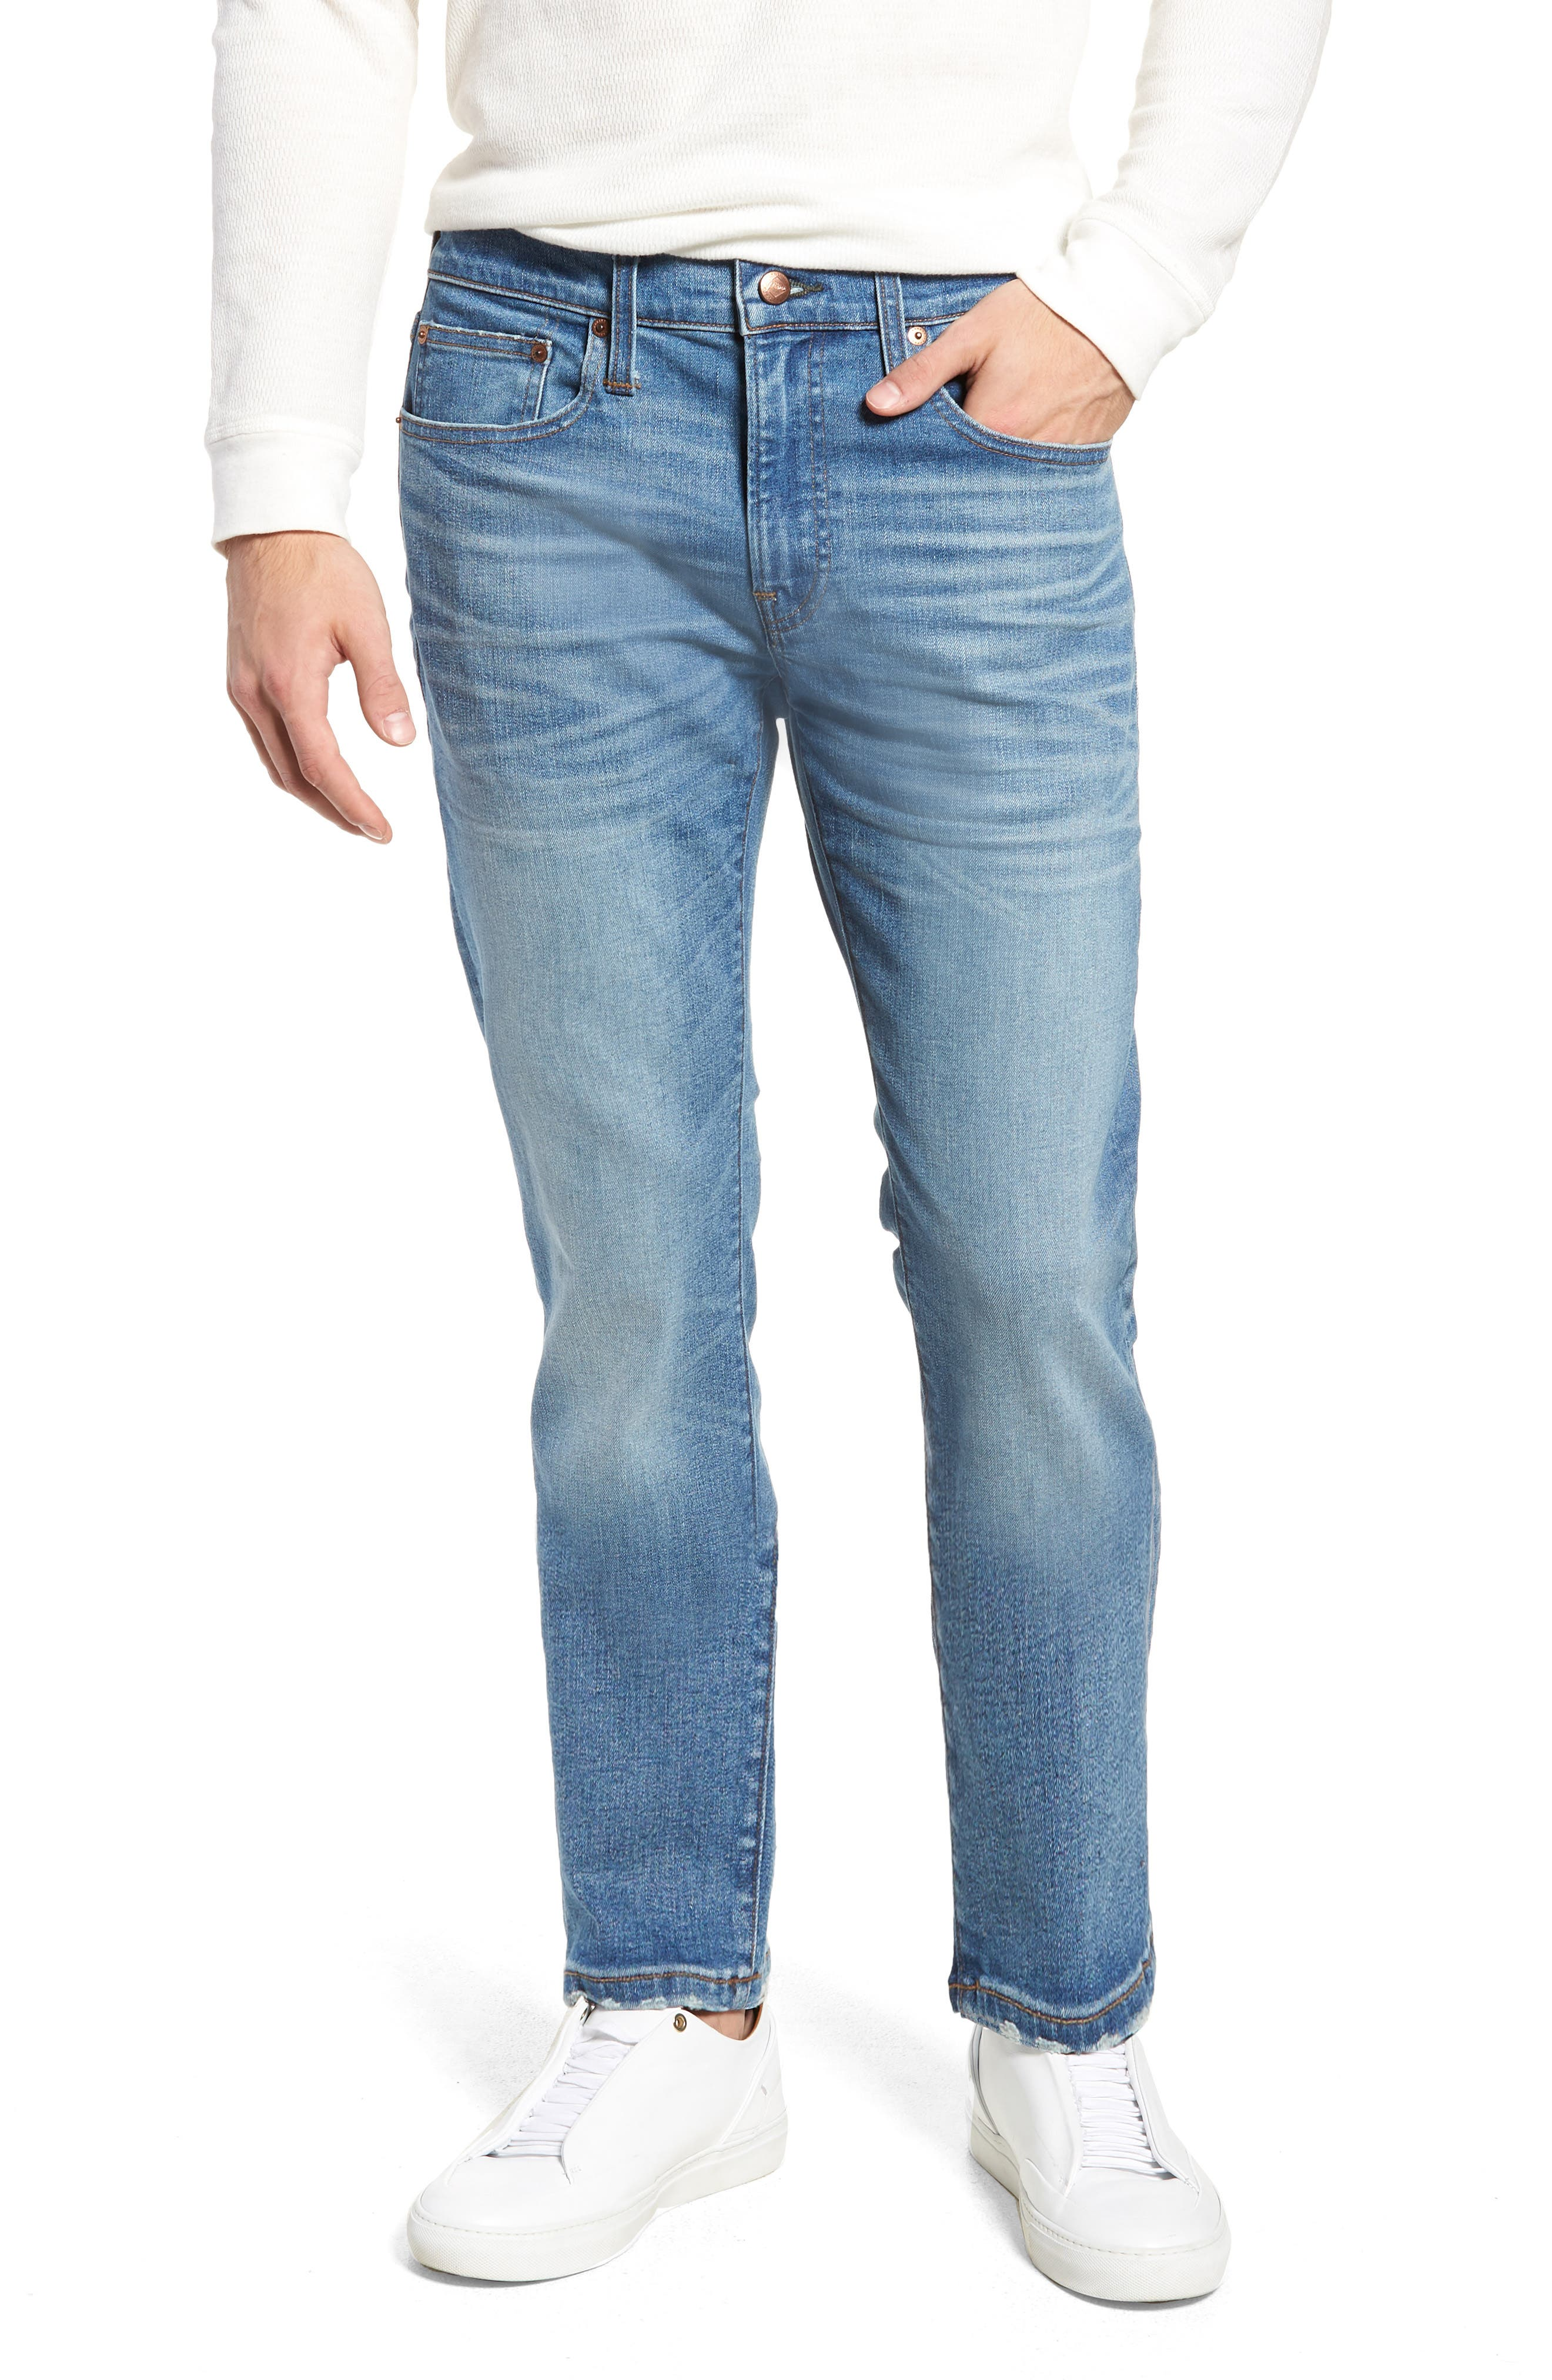 484 Slim Fit Distressed Stretch Jeans,                             Main thumbnail 1, color,                             STOCKTON WASH